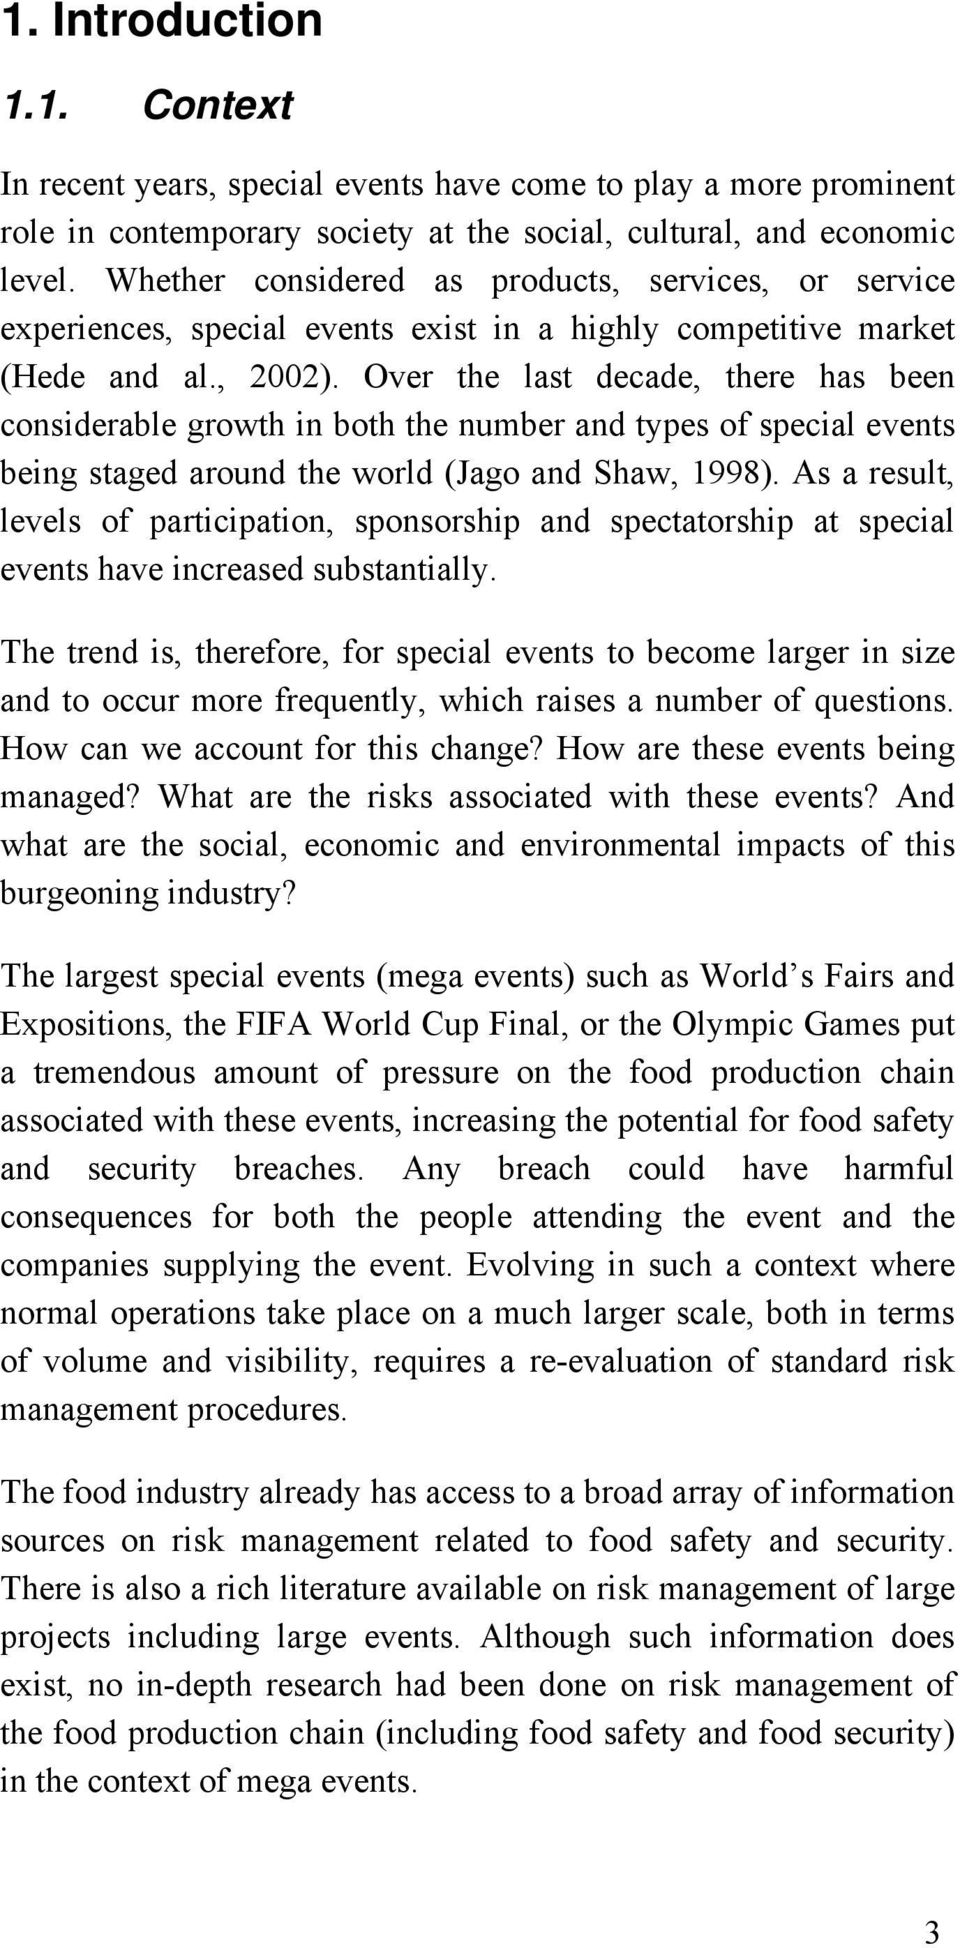 Over the last decade, there has been considerable growth in both the number and types of special events being staged around the world (Jago and Shaw, 1998).